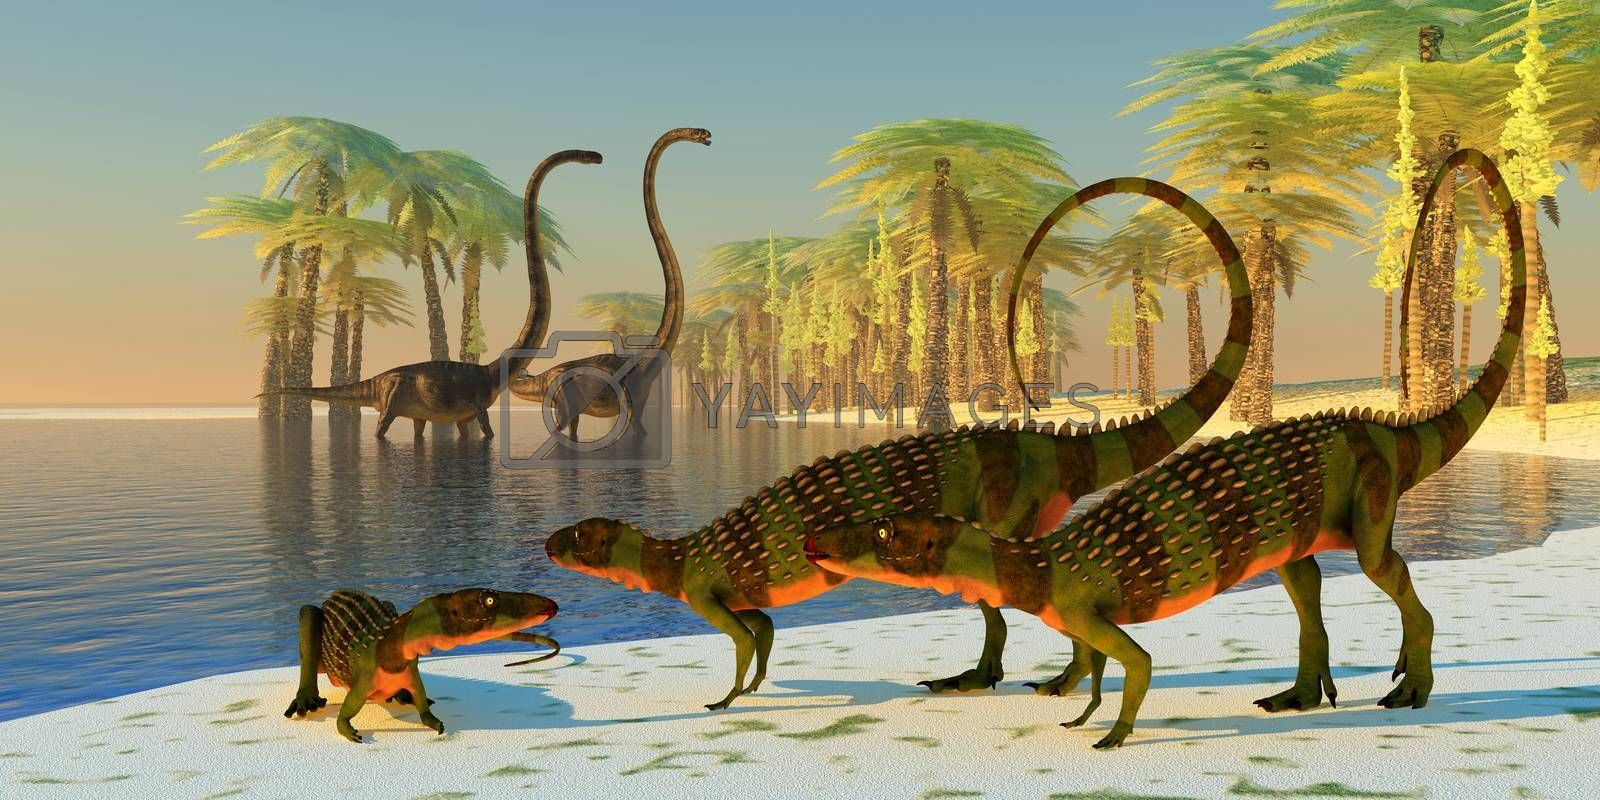 Three armored Scutellosaurus dinosaurs lounge around the edge of a pond with Omeisaurus dinosaurs coming to eat the foliage of nearby Silver Tree Ferns.